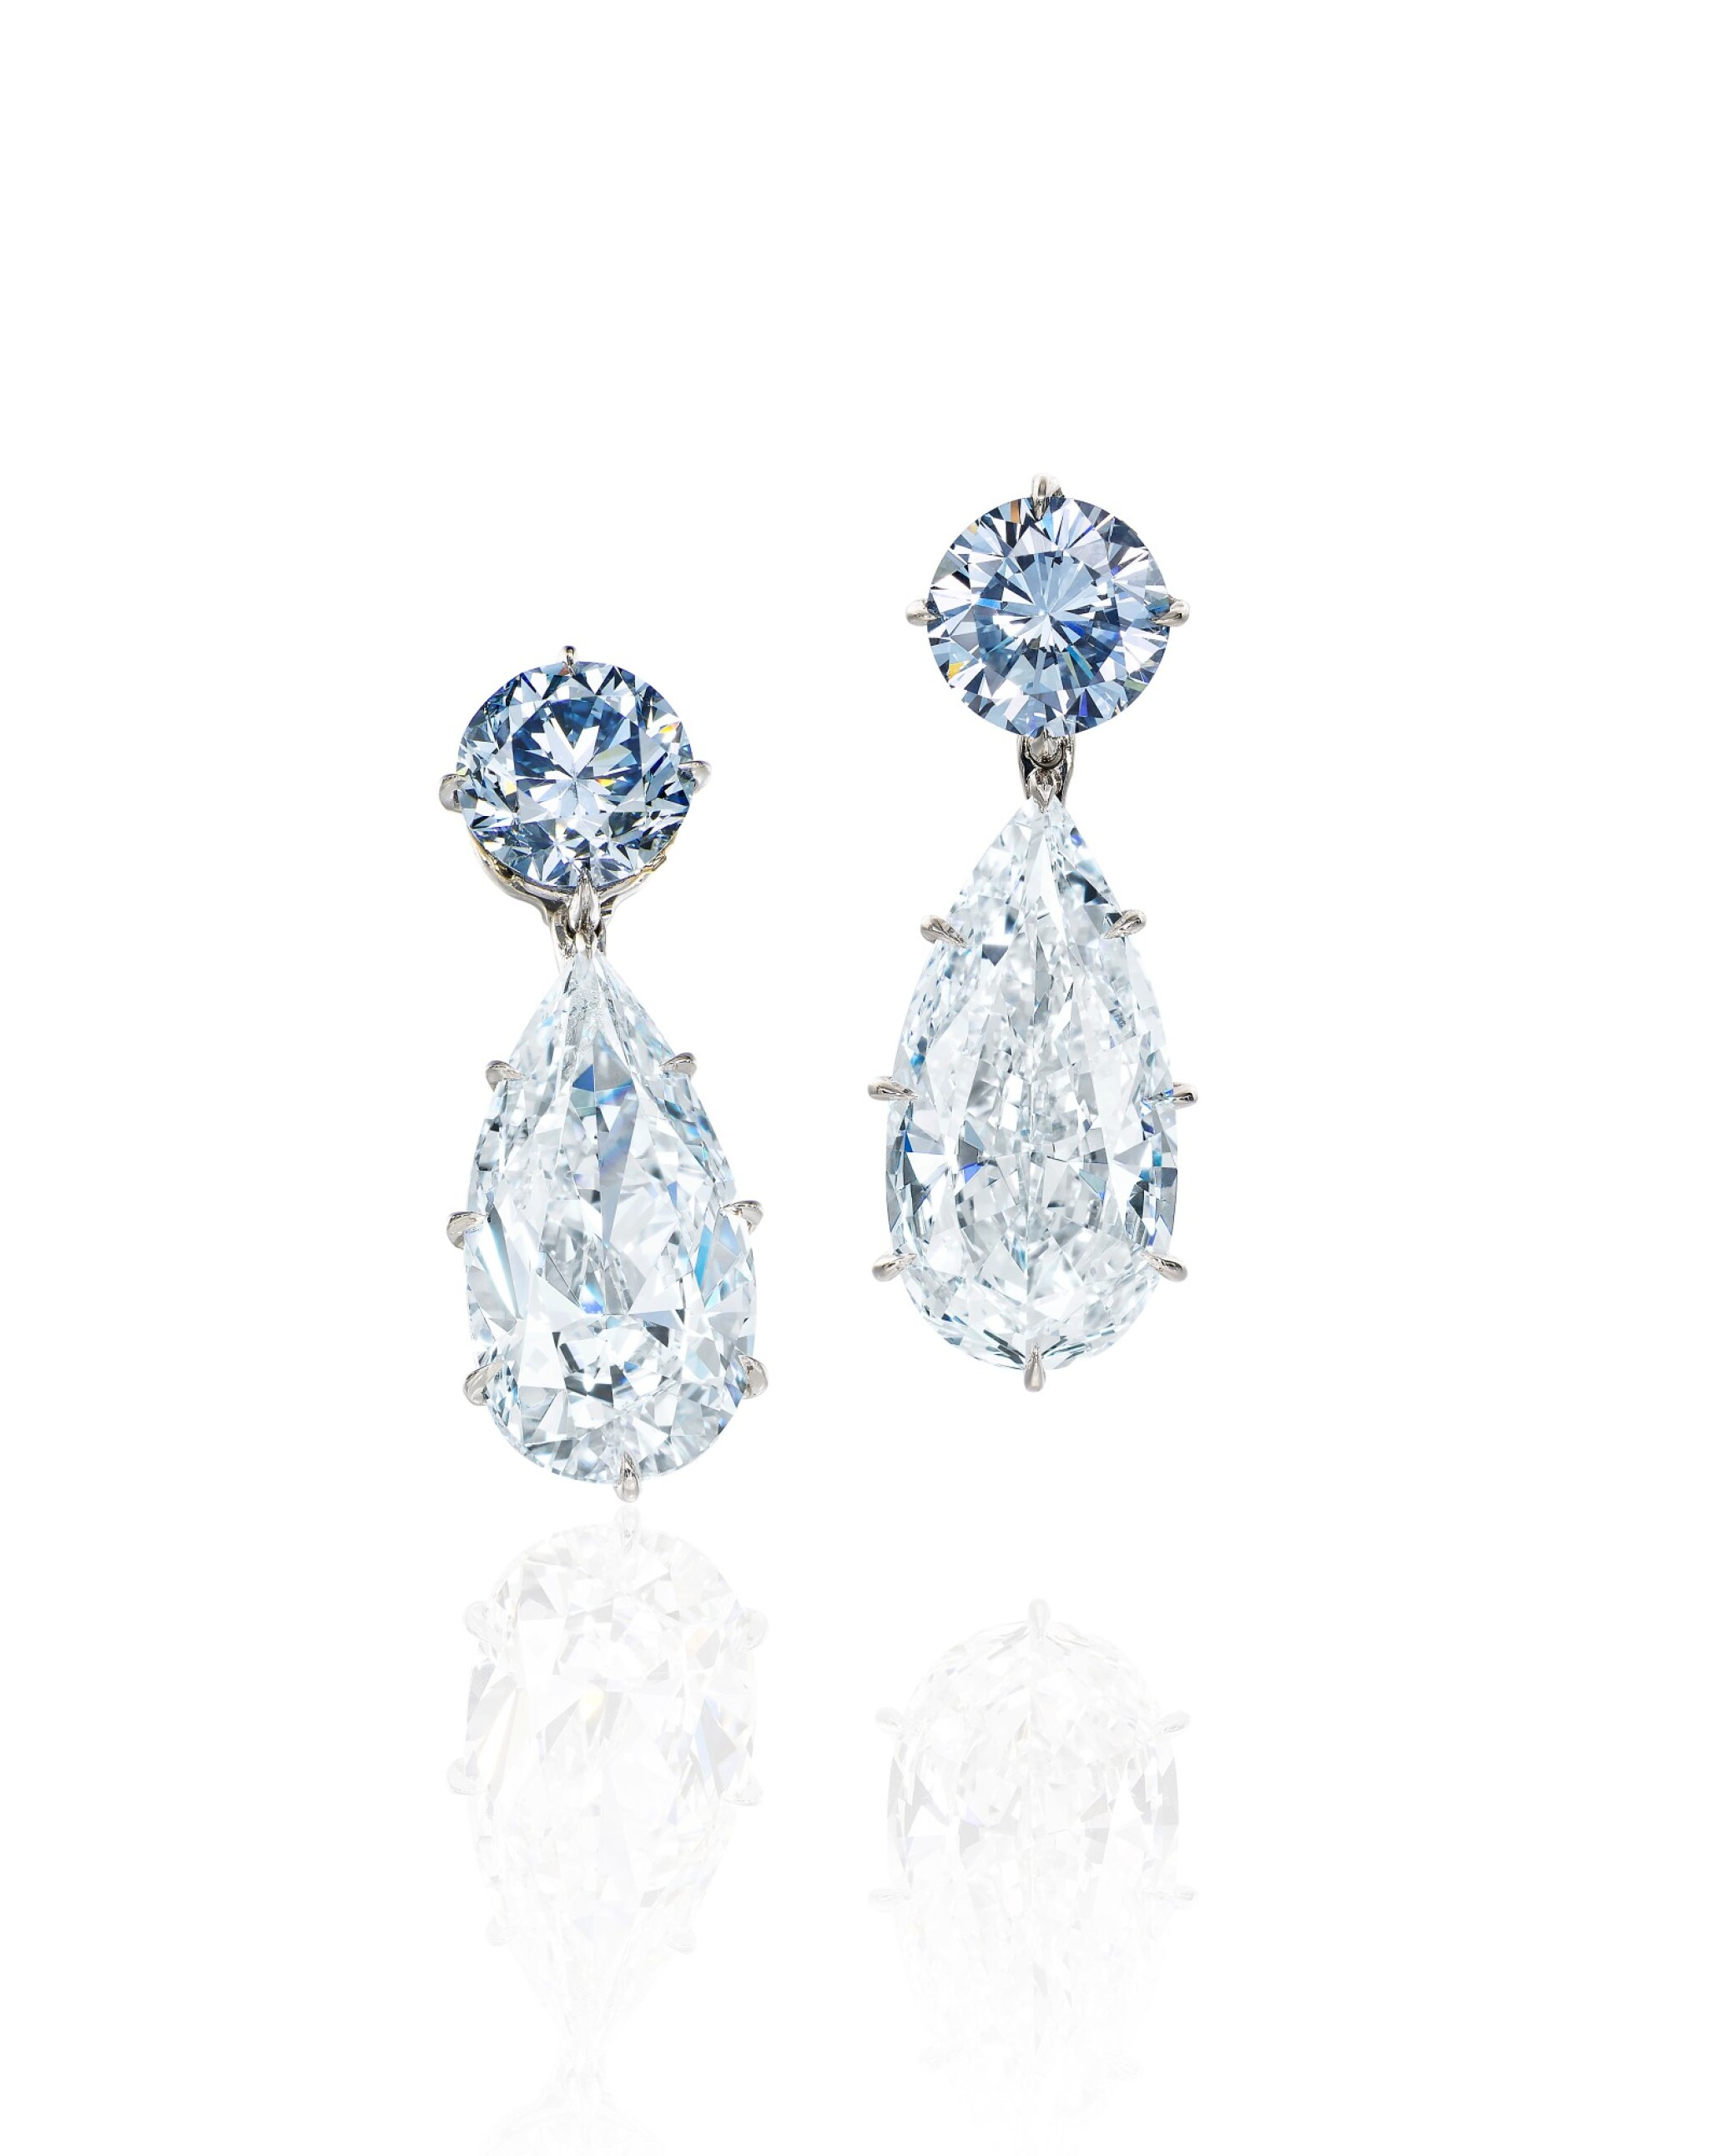 View 1 of Lot 1753. AN EXQUISITE AND UNIQUE PAIR OF FANCY INTENSE BLUE DIAMOND AND DIAMOND PENDENT EARRINGS | 超凡尚品 1.95及1.63卡拉 濃彩藍色鑽石 配 5.95及 5.24卡拉 梨形 D色 內部無瑕(IF)Type IIa 鑽石 耳墜一對.